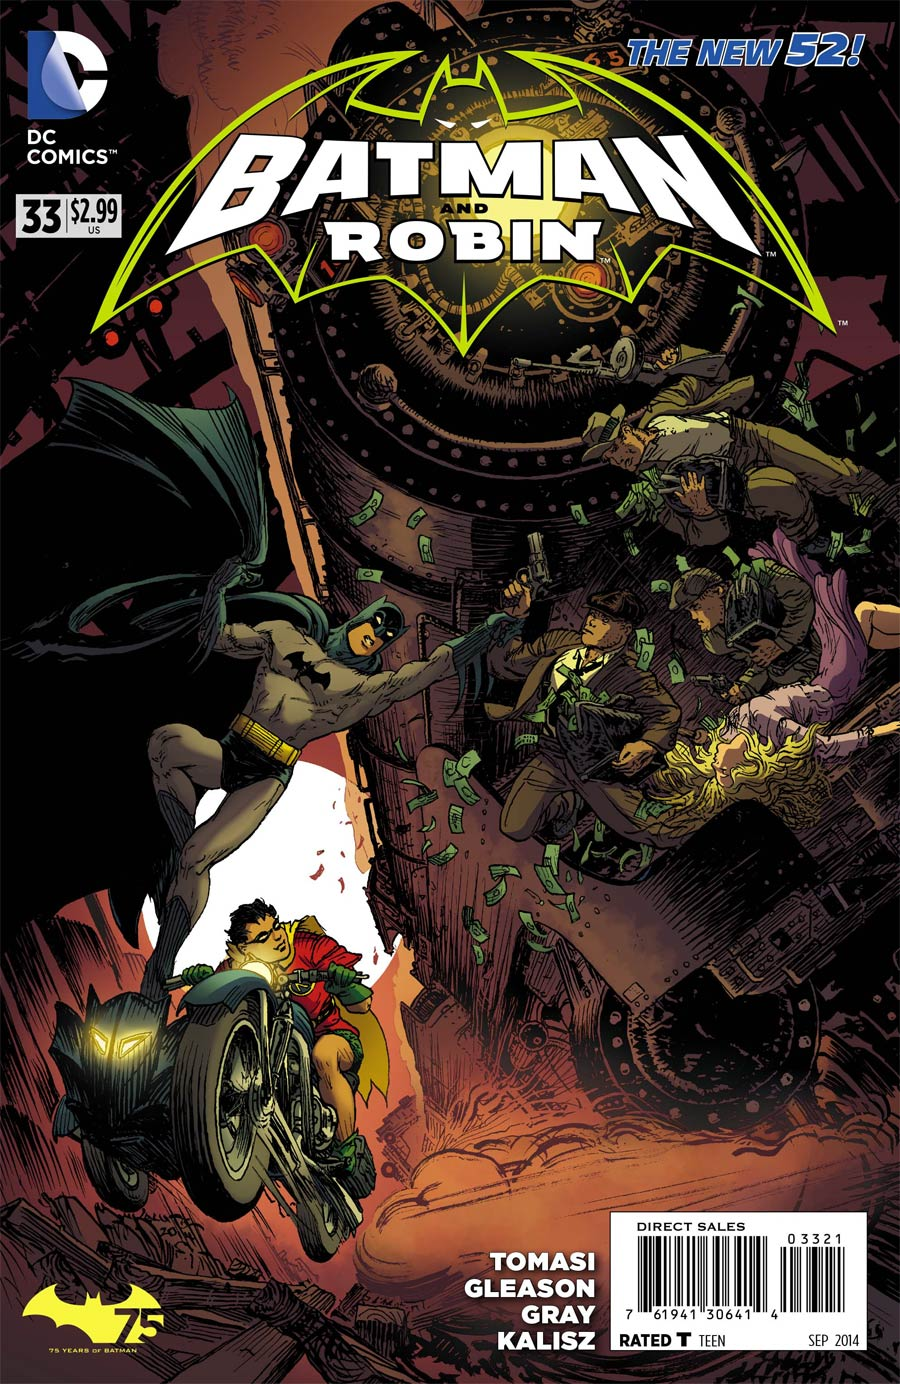 Batman And Robin Vol 2 #33 Cover B Variant Michael William Kaluta Batman 75th Anniversary Cover (Robin Rises Tie-In)